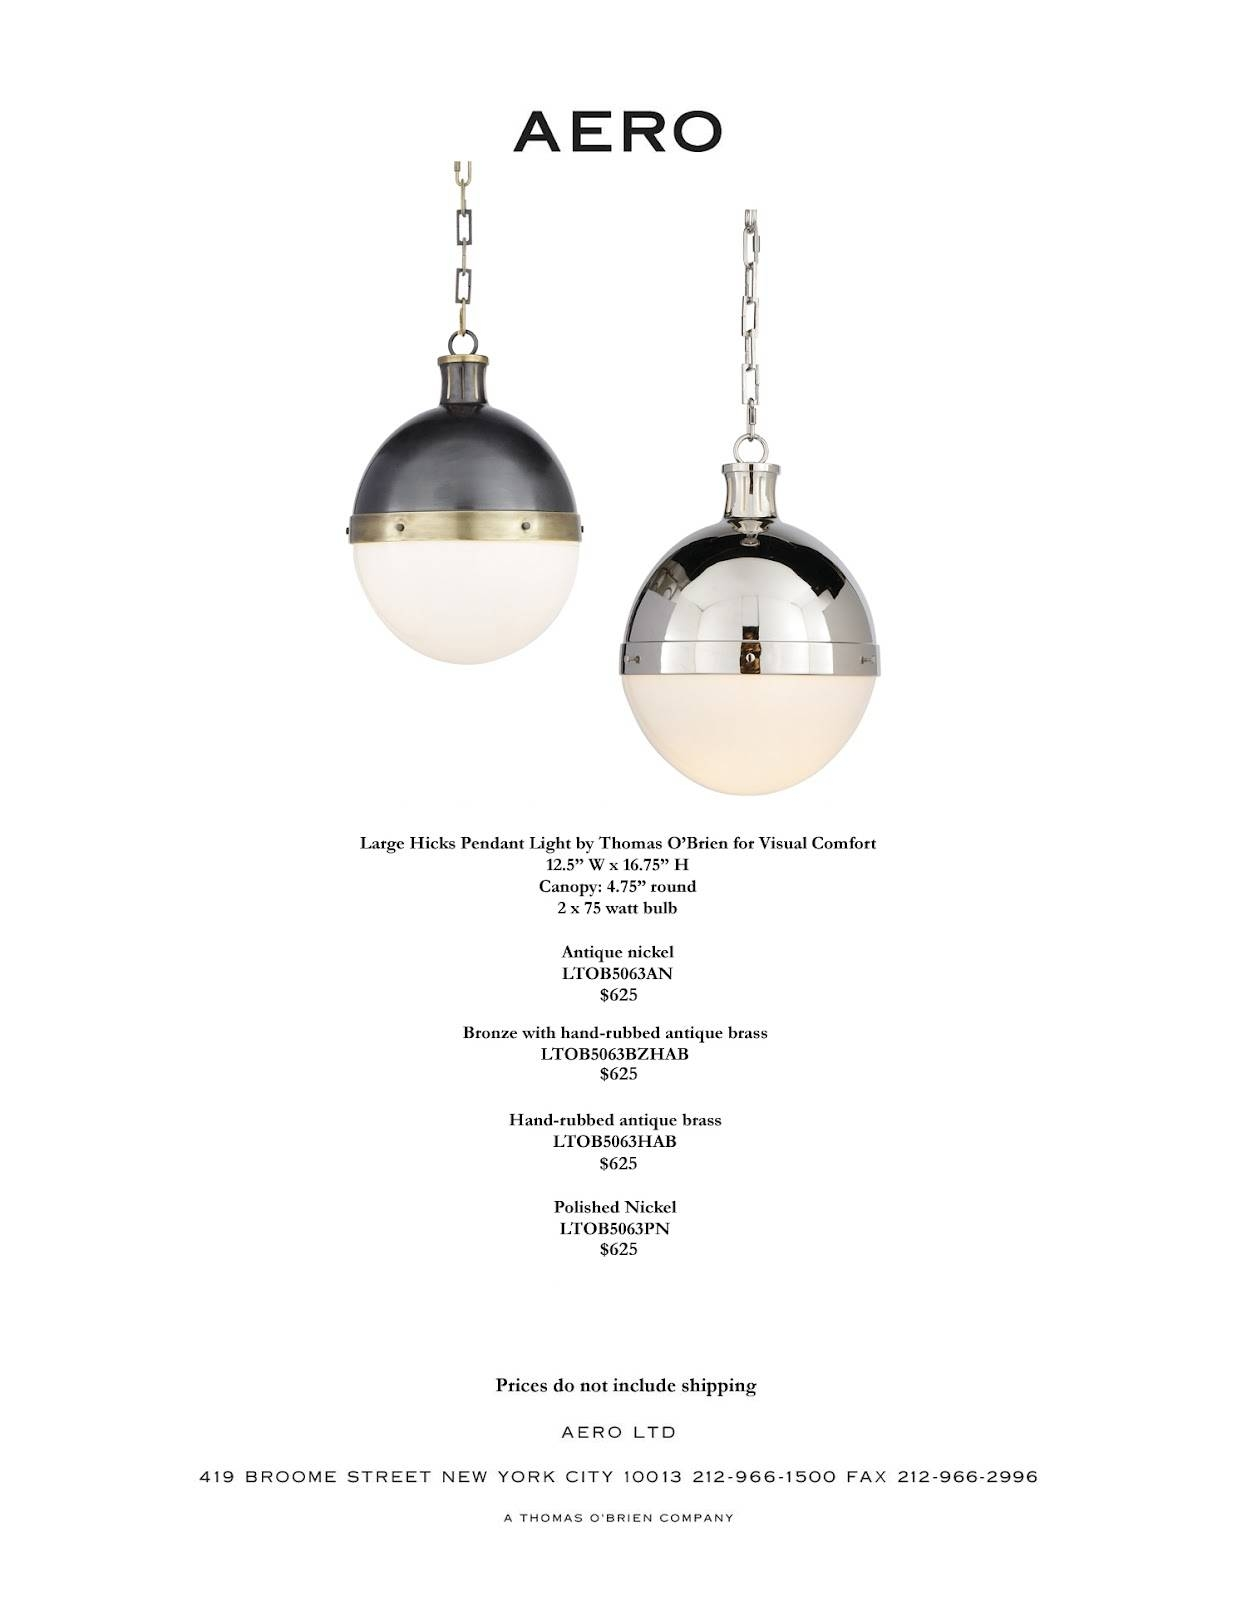 Everything Aero: May 2012 with Large Hicks Pendants (Image 4 of 15)